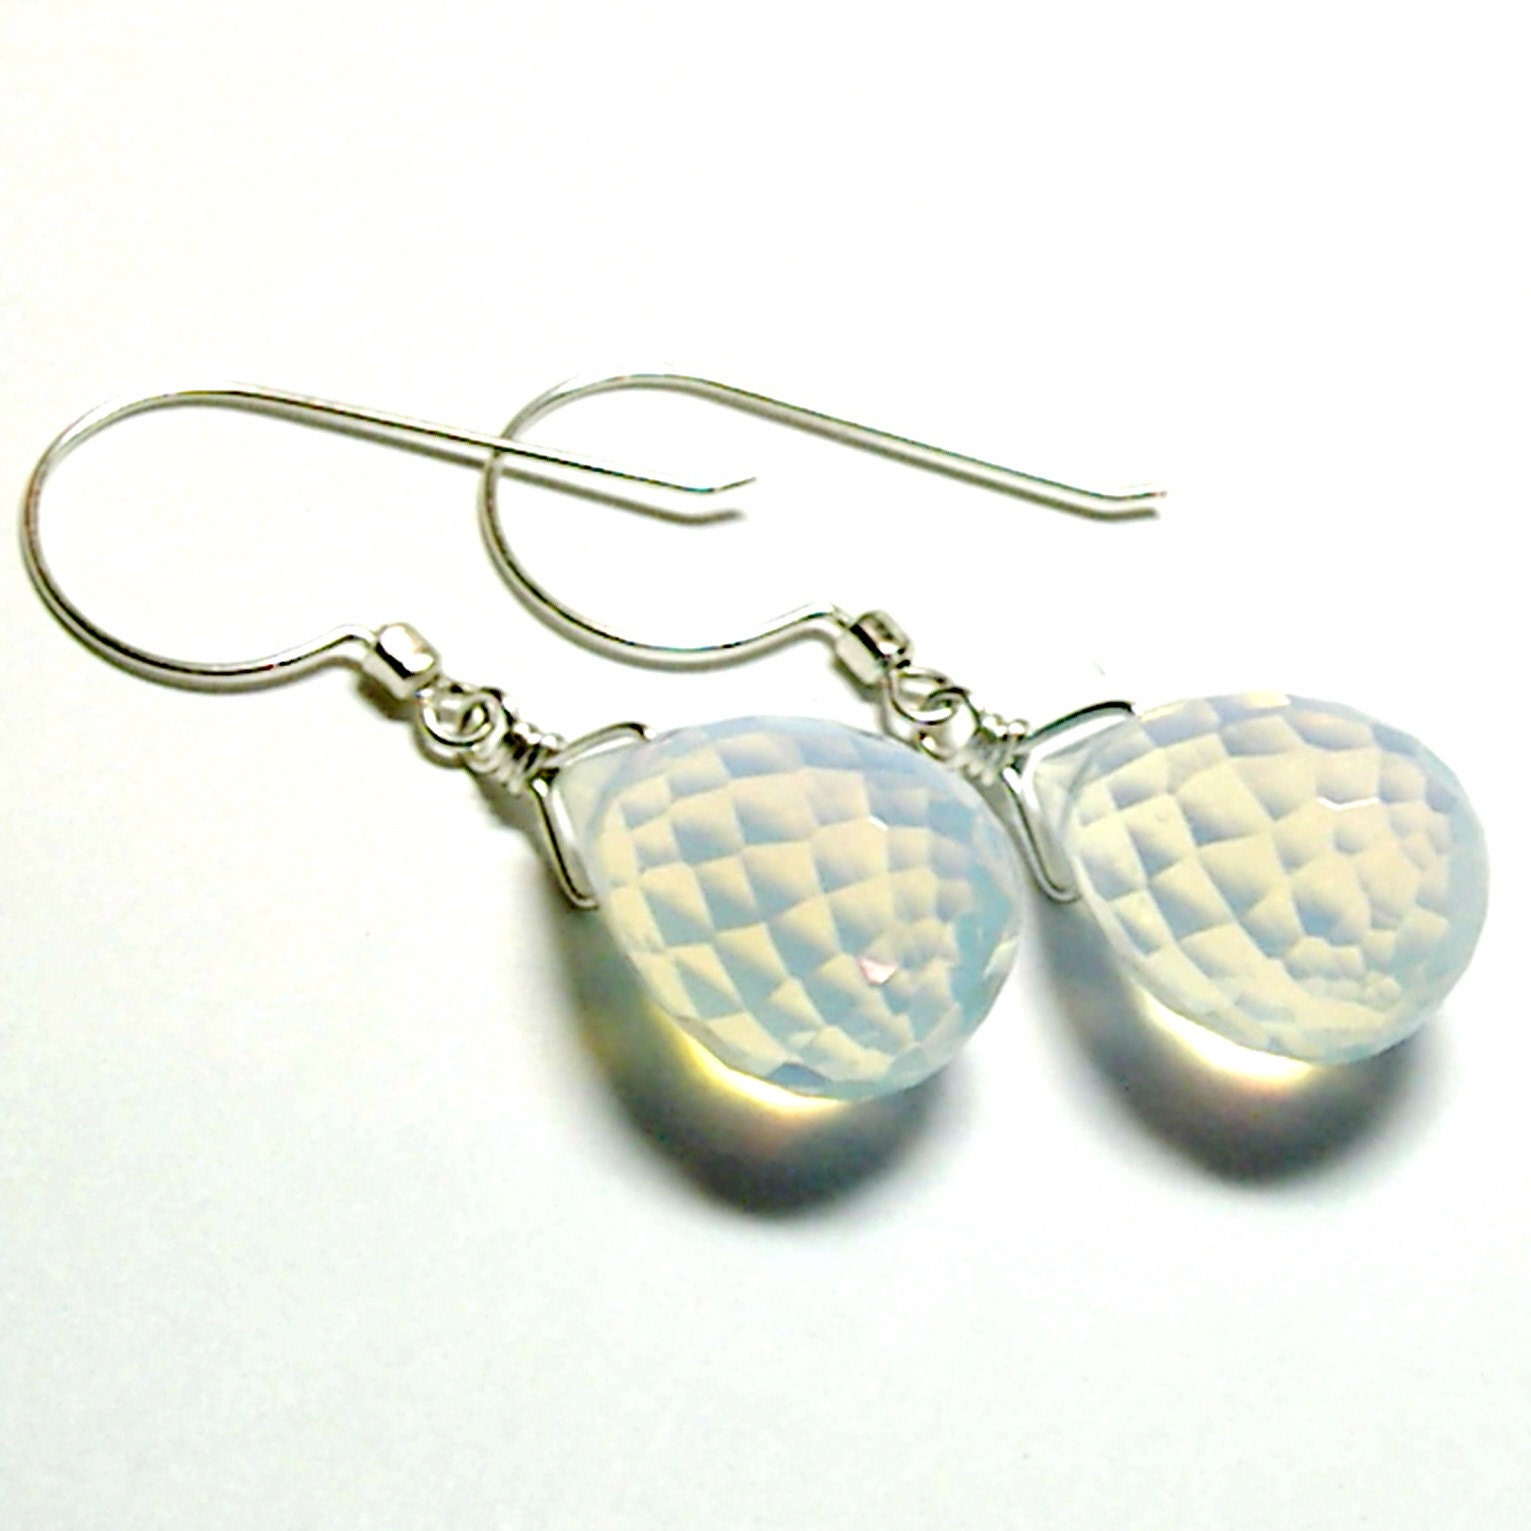 Opalite Faceted Teardrop Earrings by tilleyjewelsbride on Etsy from etsy.com